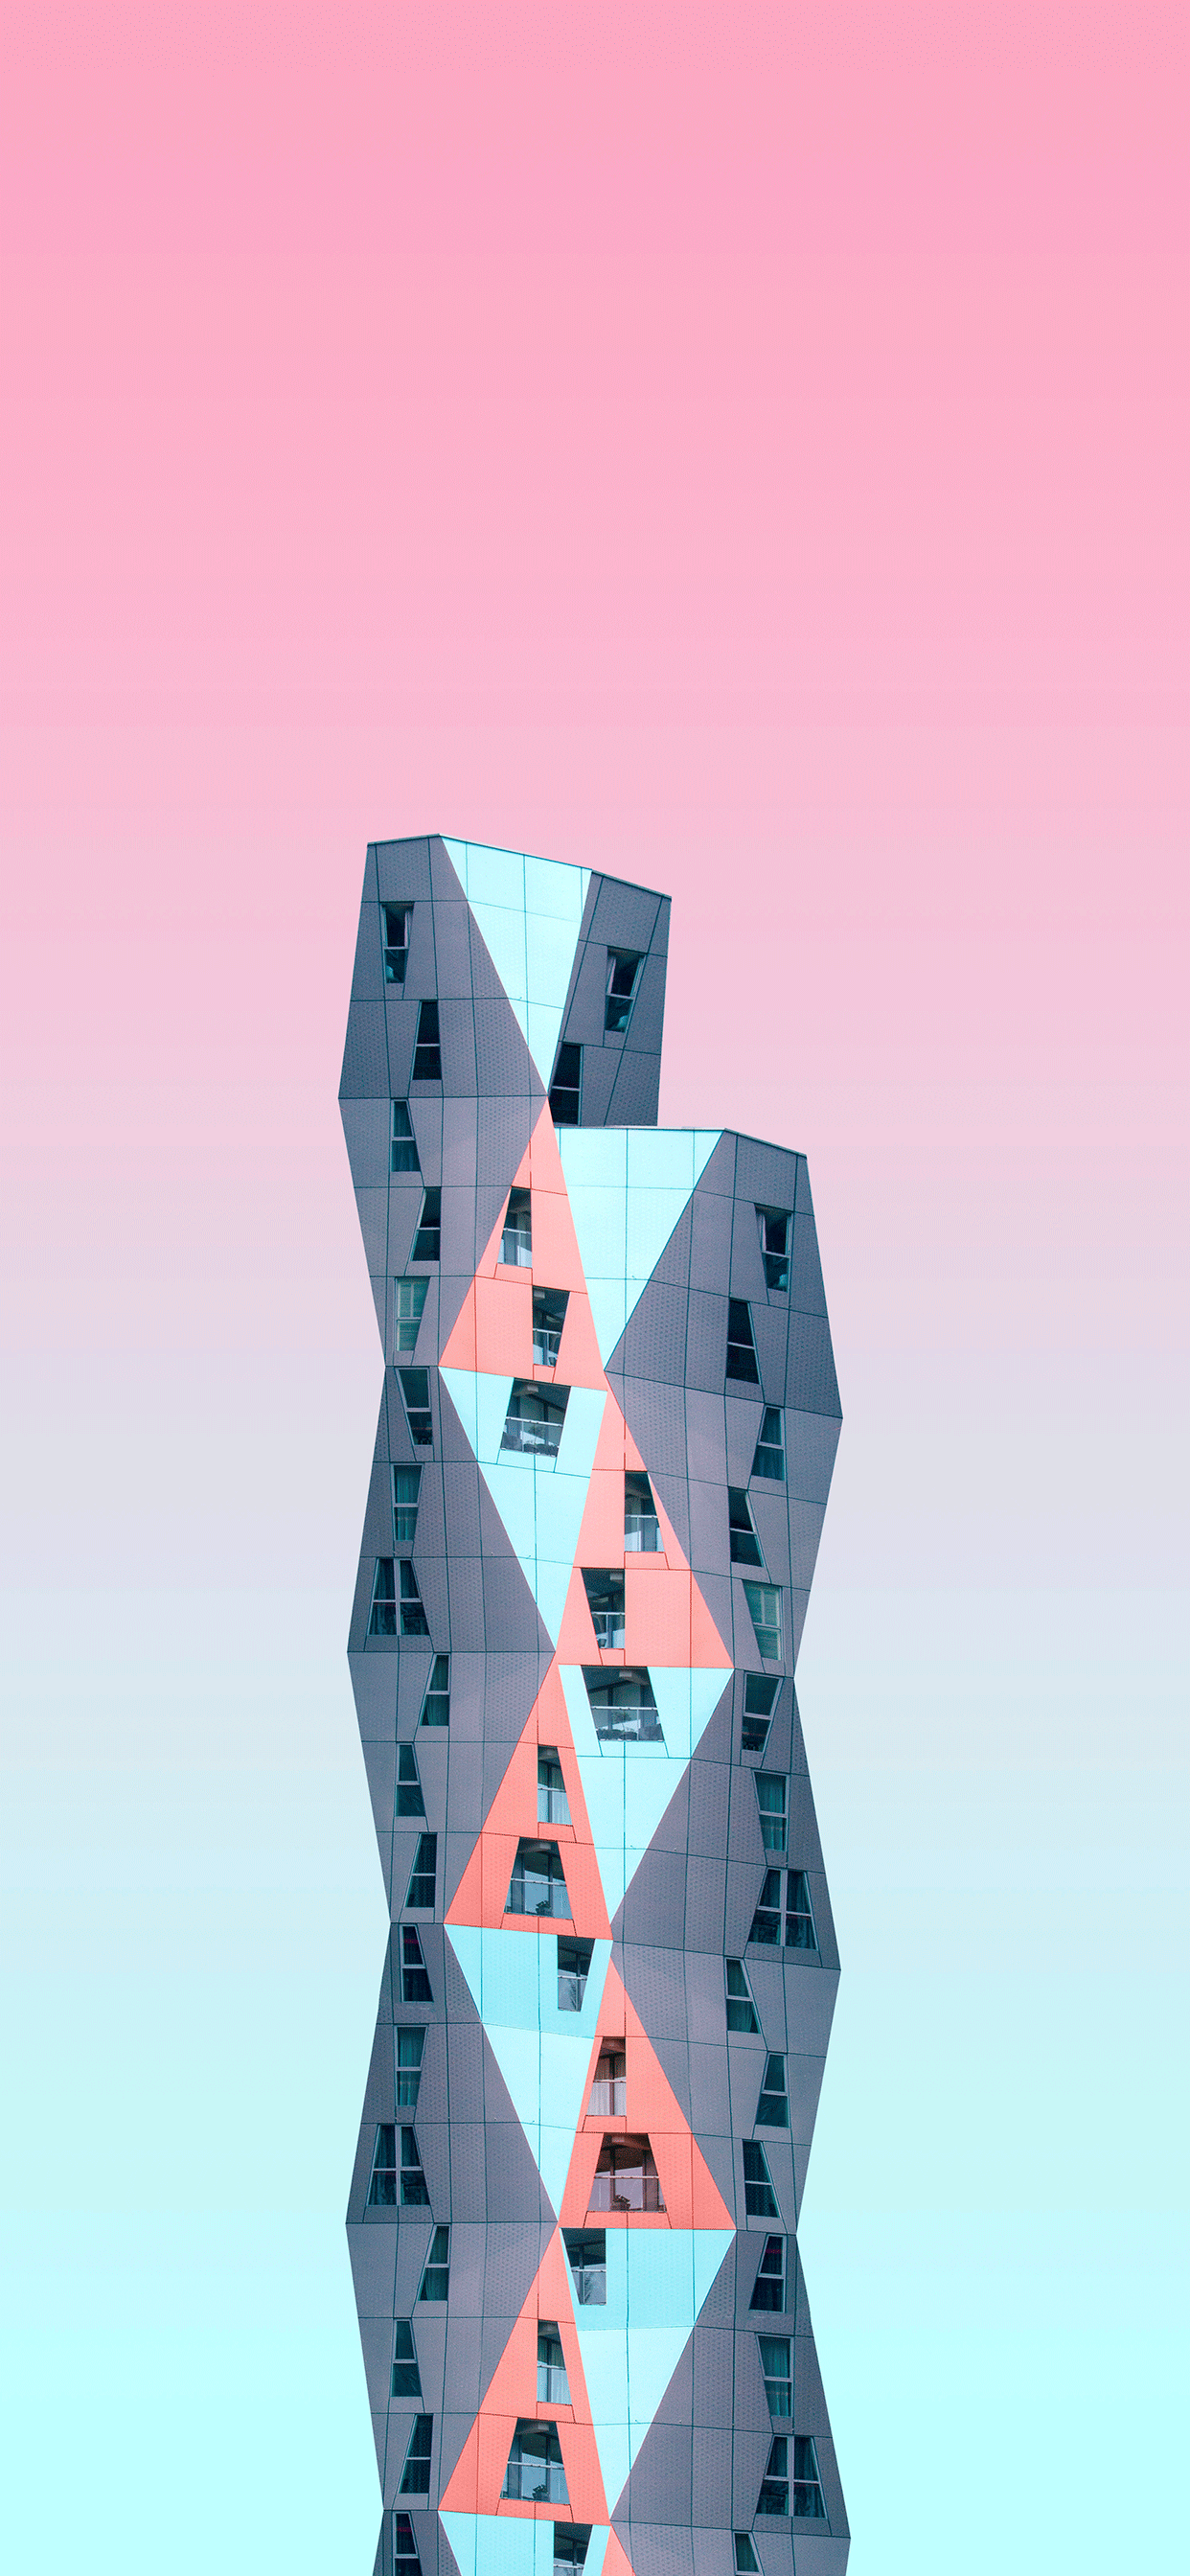 iPhone wallpaper architecture rotterdam Fonds d'écran iPhone du 27/02/2019